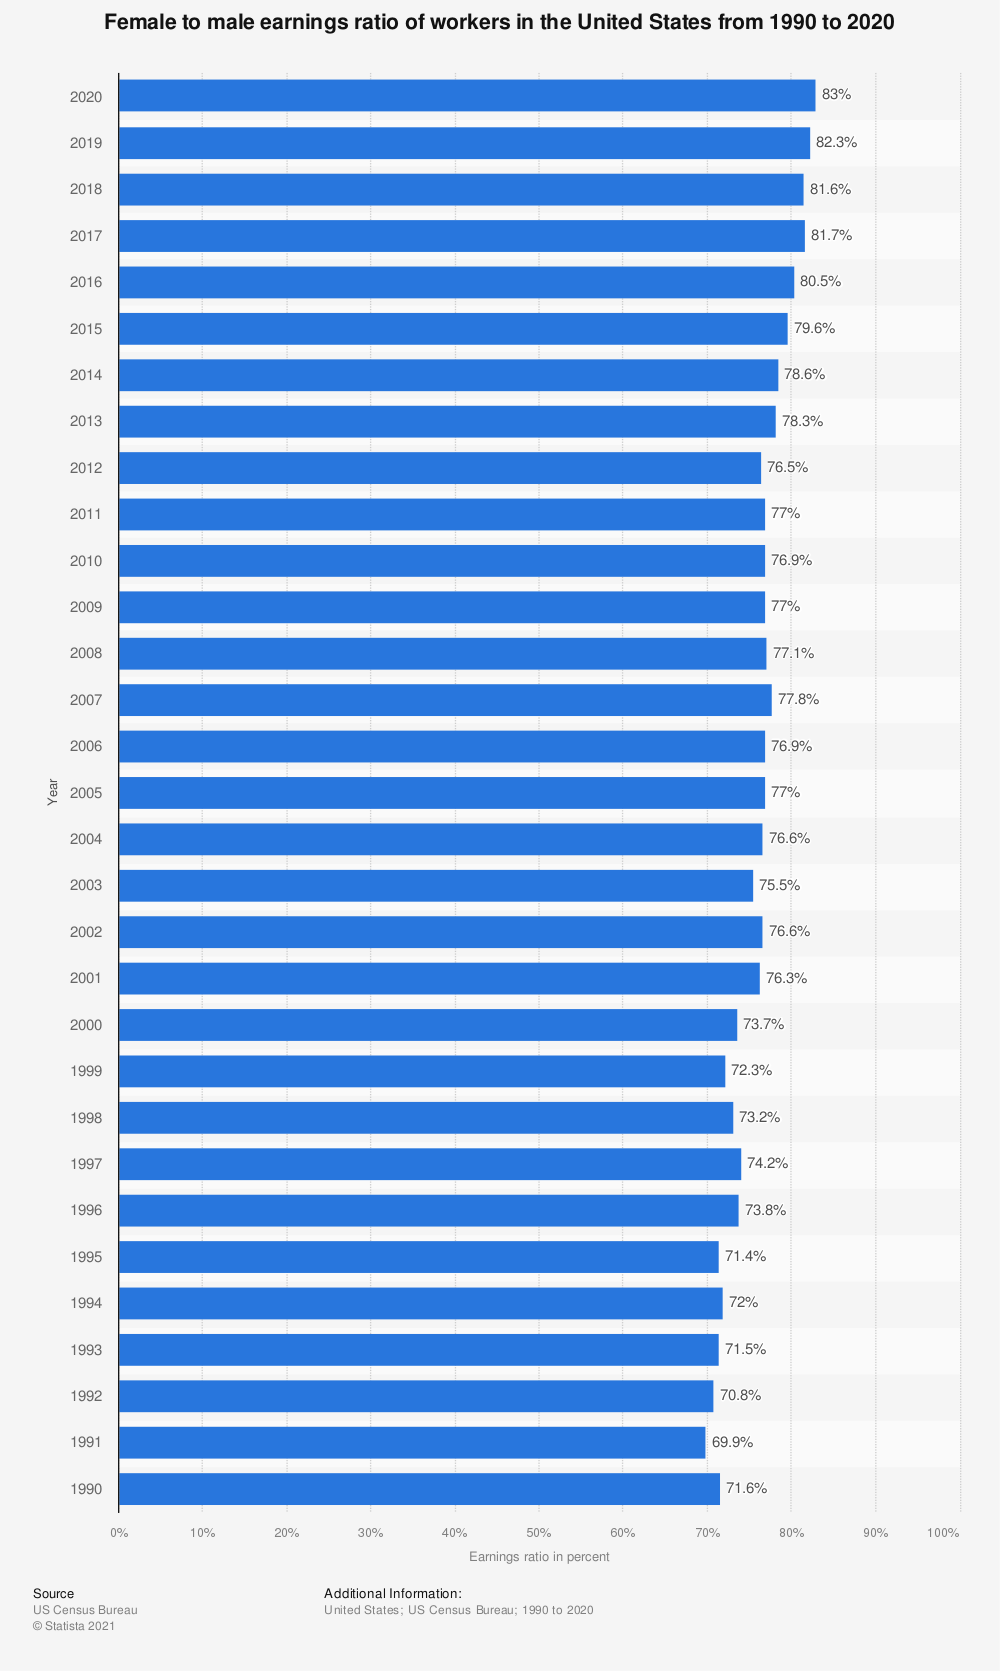 Statistic: Female to male earnings ratio of workers in the U.S. from 1990 to 2018 | Statista